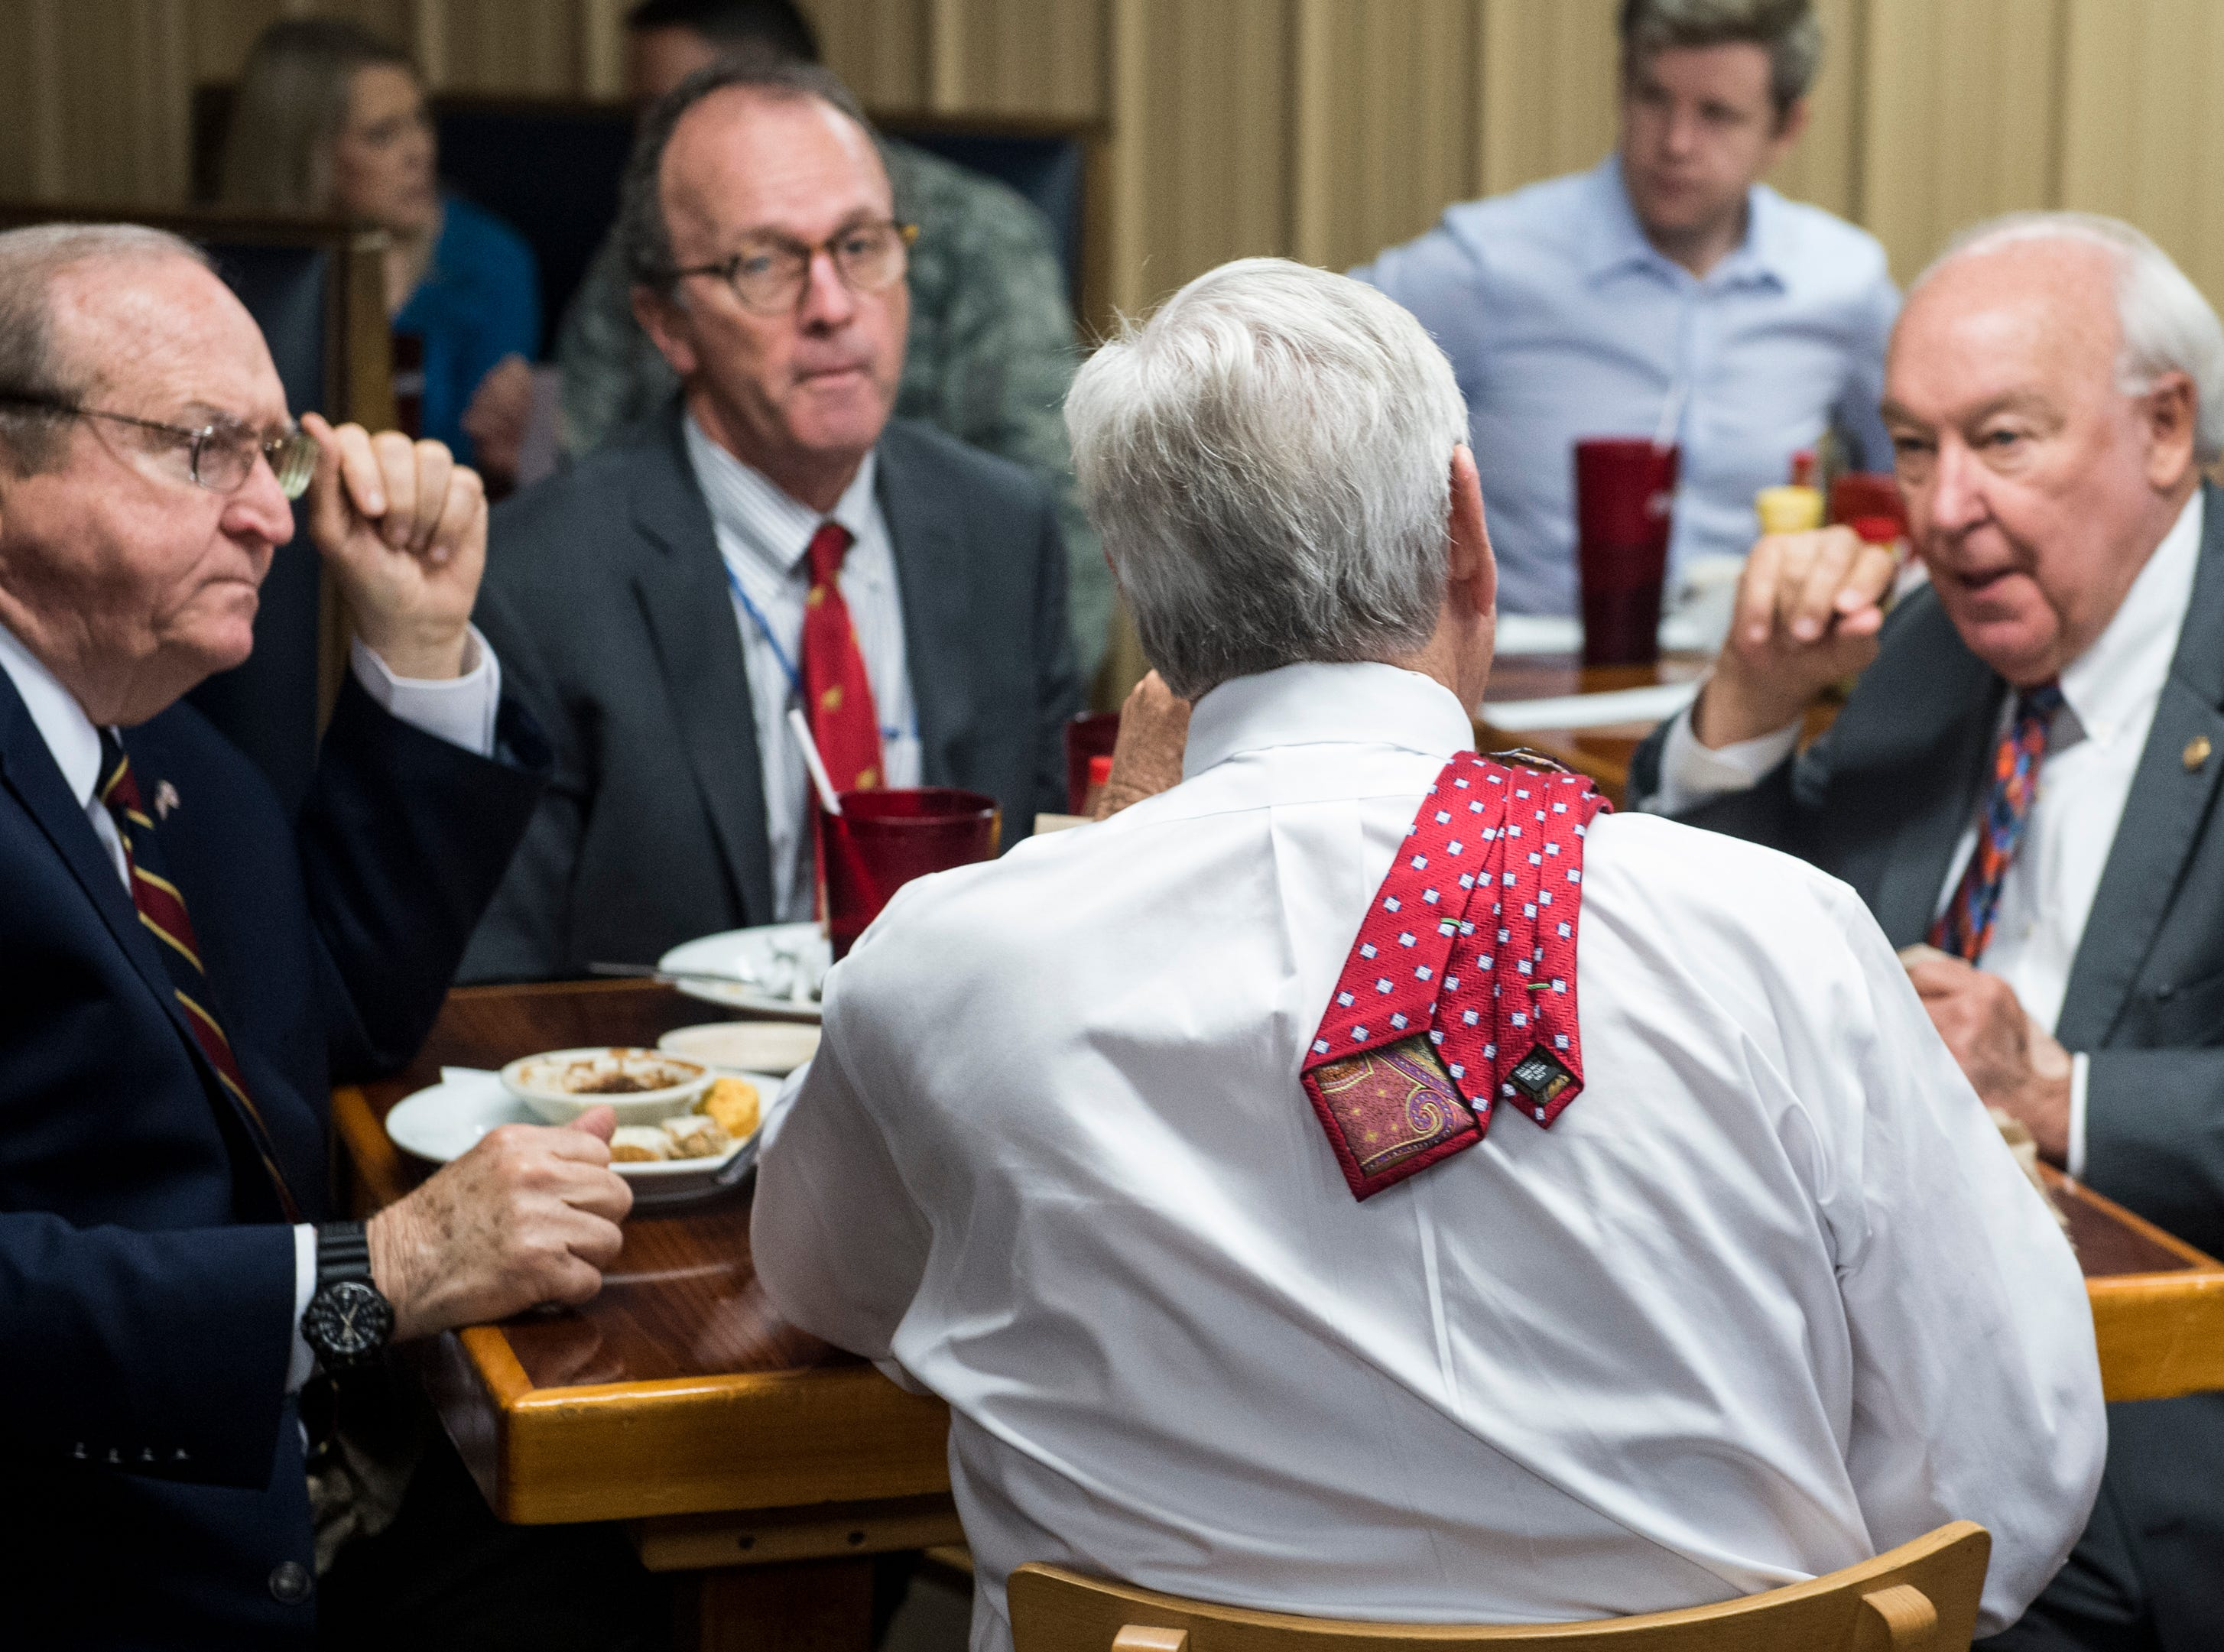 Montgomery Mayor Todd Strange, middle, enjoys a meat and three meal as he waits for U.S. Rep. Bradley Byrne at Yellowhammer Cafe in Montgomery, Ala., on Thursday, Feb. 21, 2019.